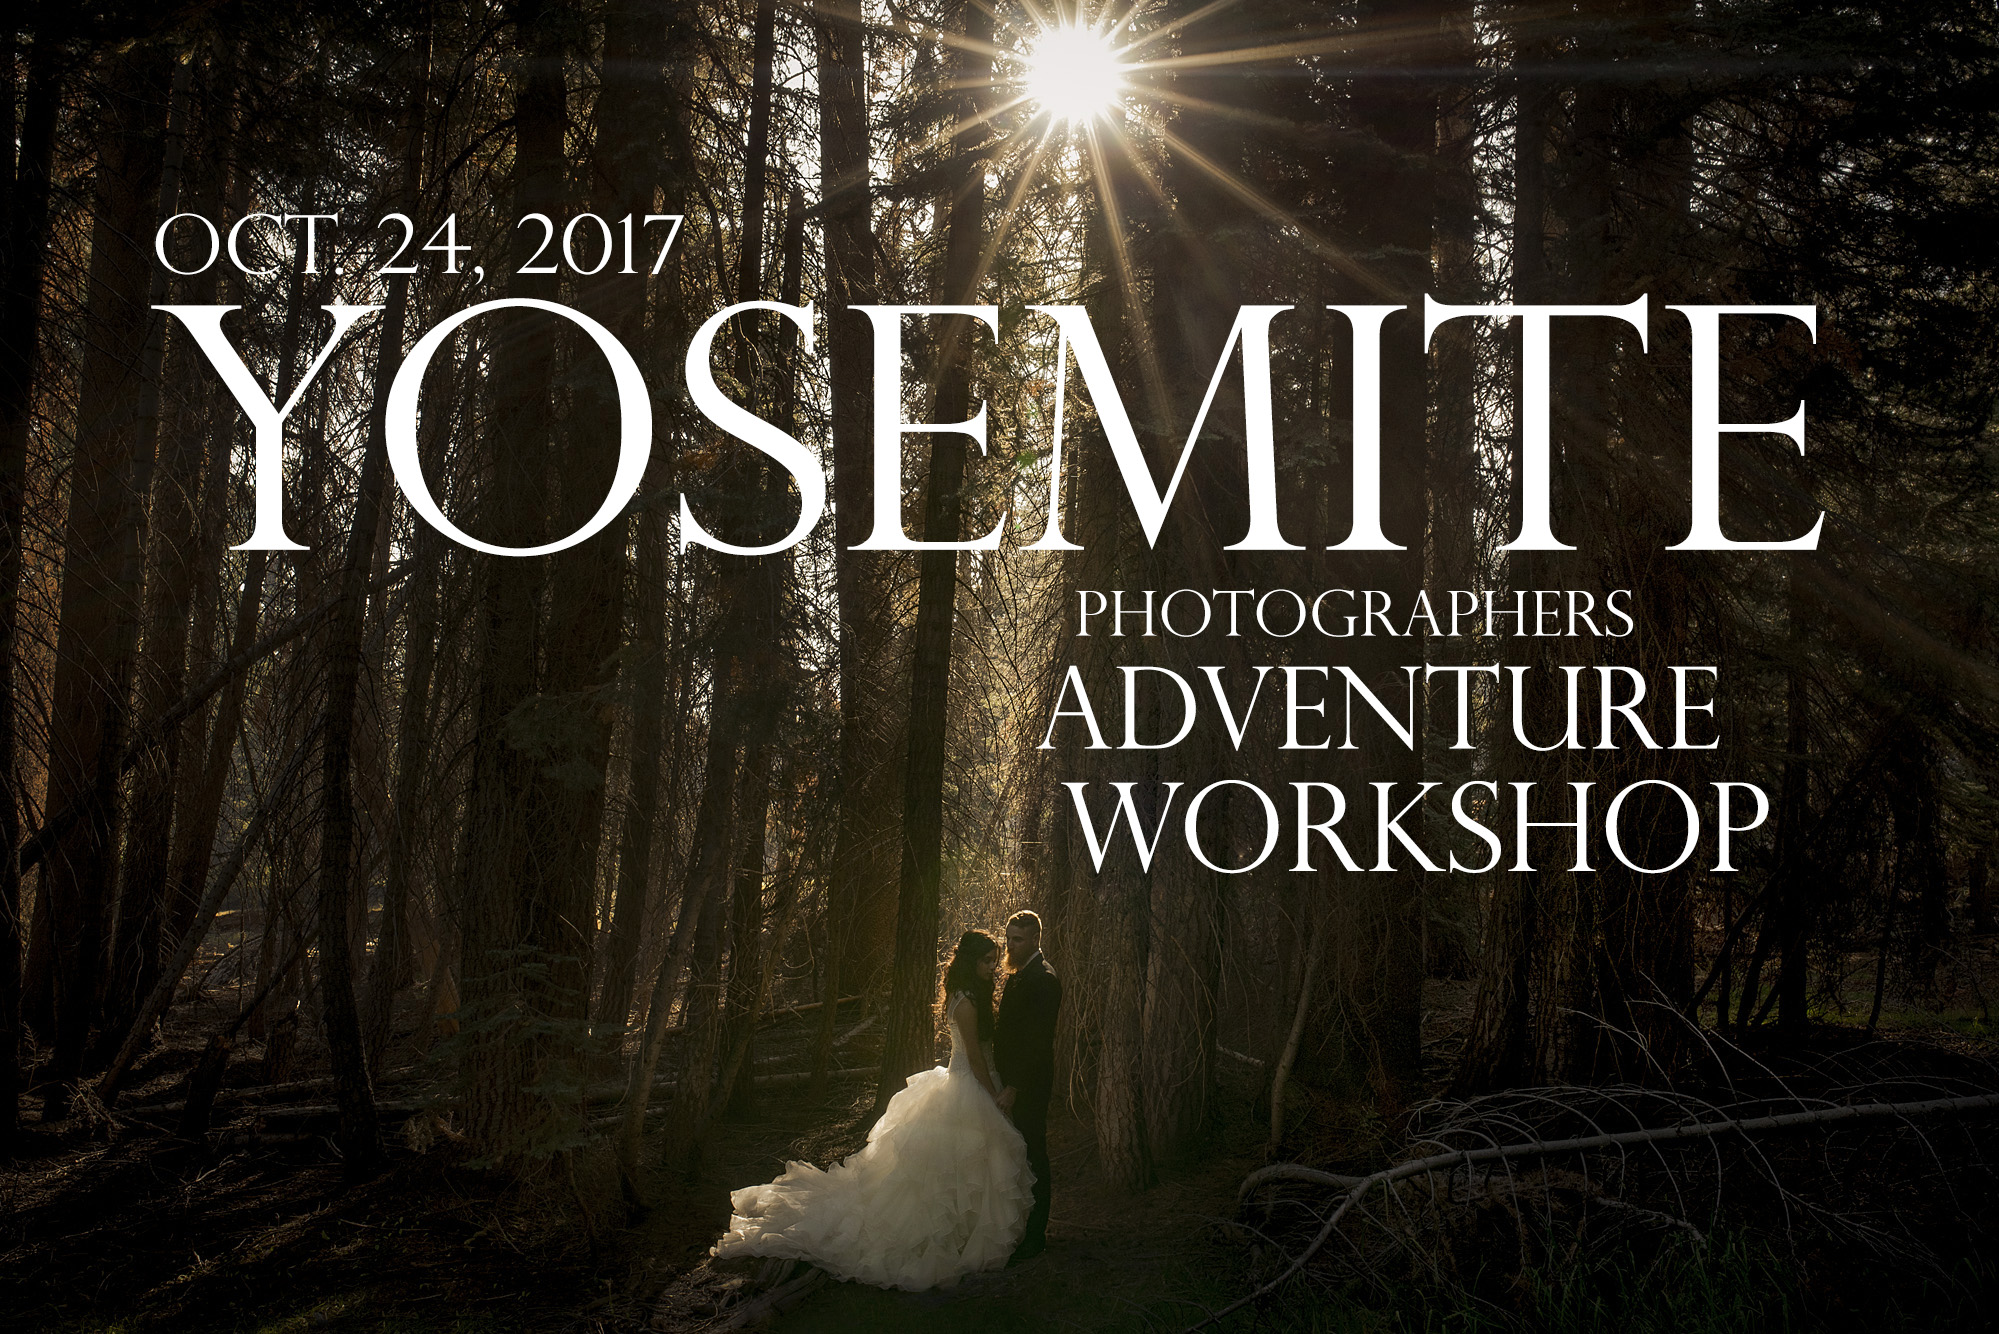 adventure wedding photographer workshop in Yosemite national park